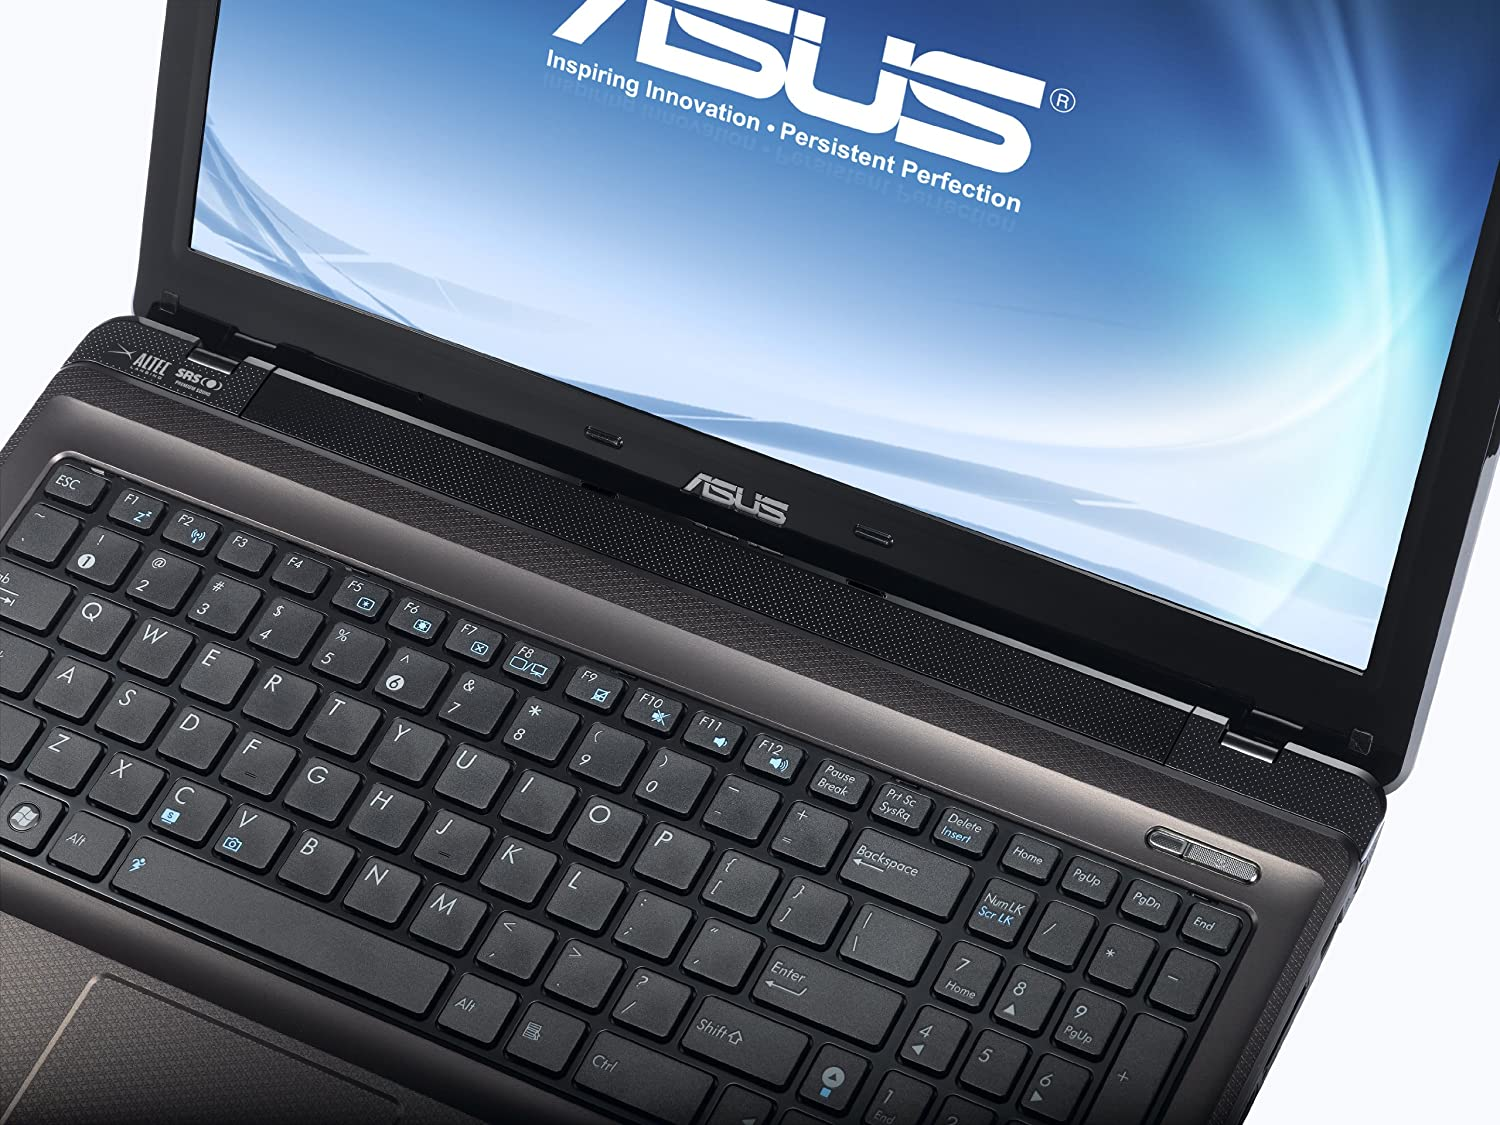 ASUS K52JC INTEL TURBO BOOST MONITOR DRIVER FOR WINDOWS 8